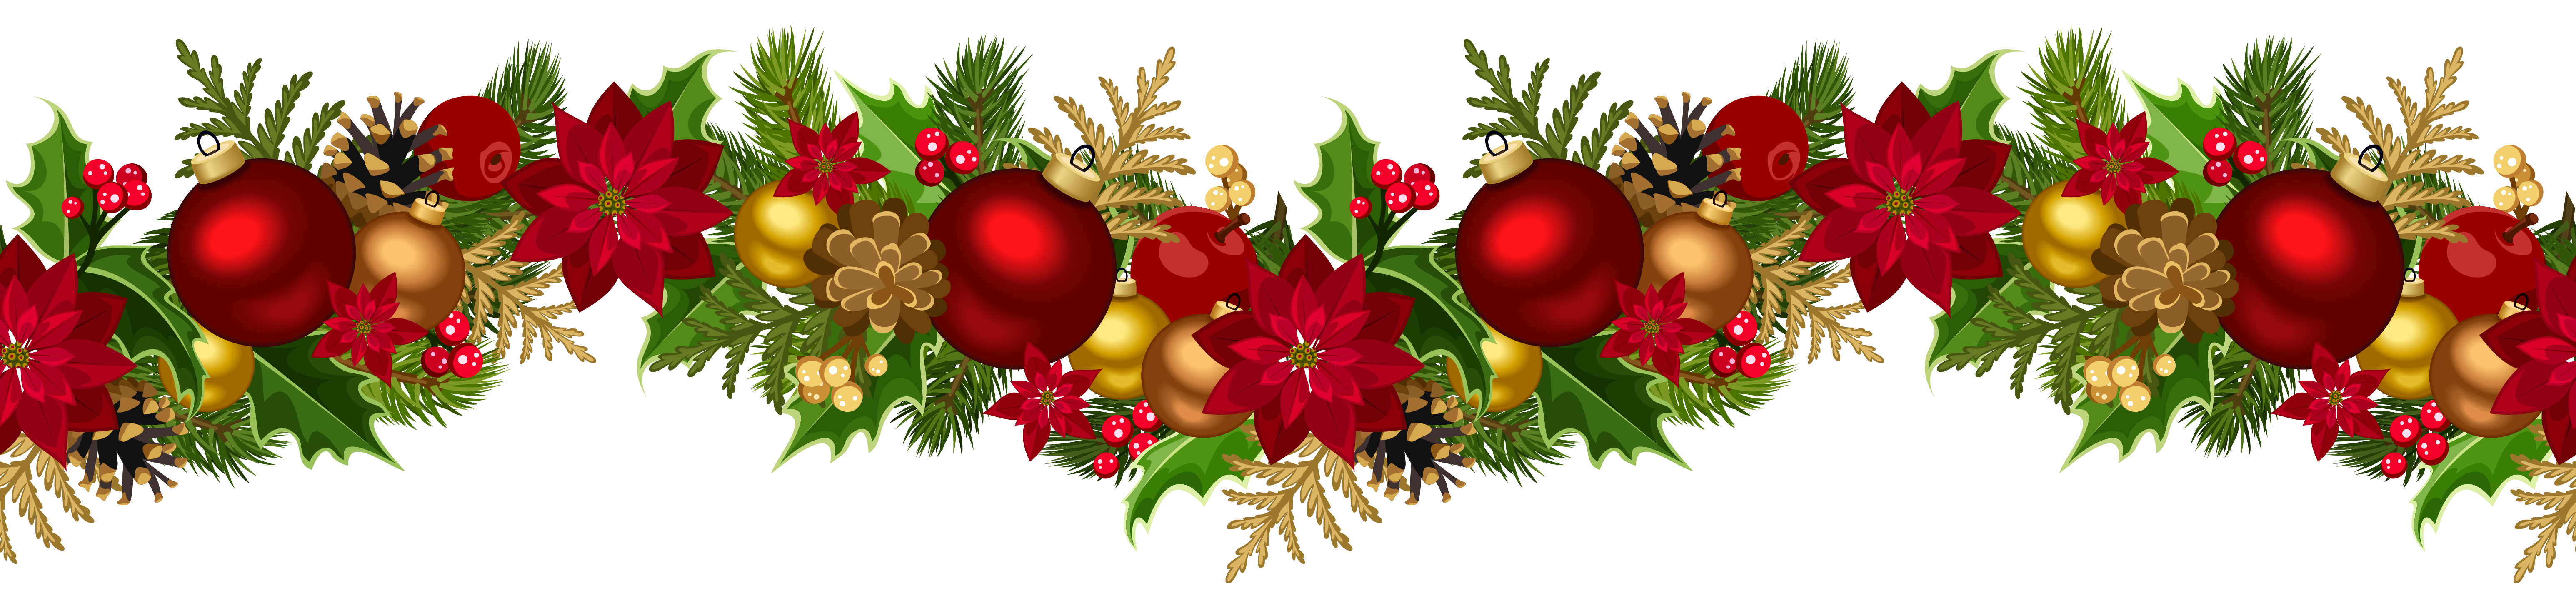 Christmas Red Bow And Bells Corner Transparent Png Clip Art Image Christmas Card Crafts Christmas Bells Christmas Border